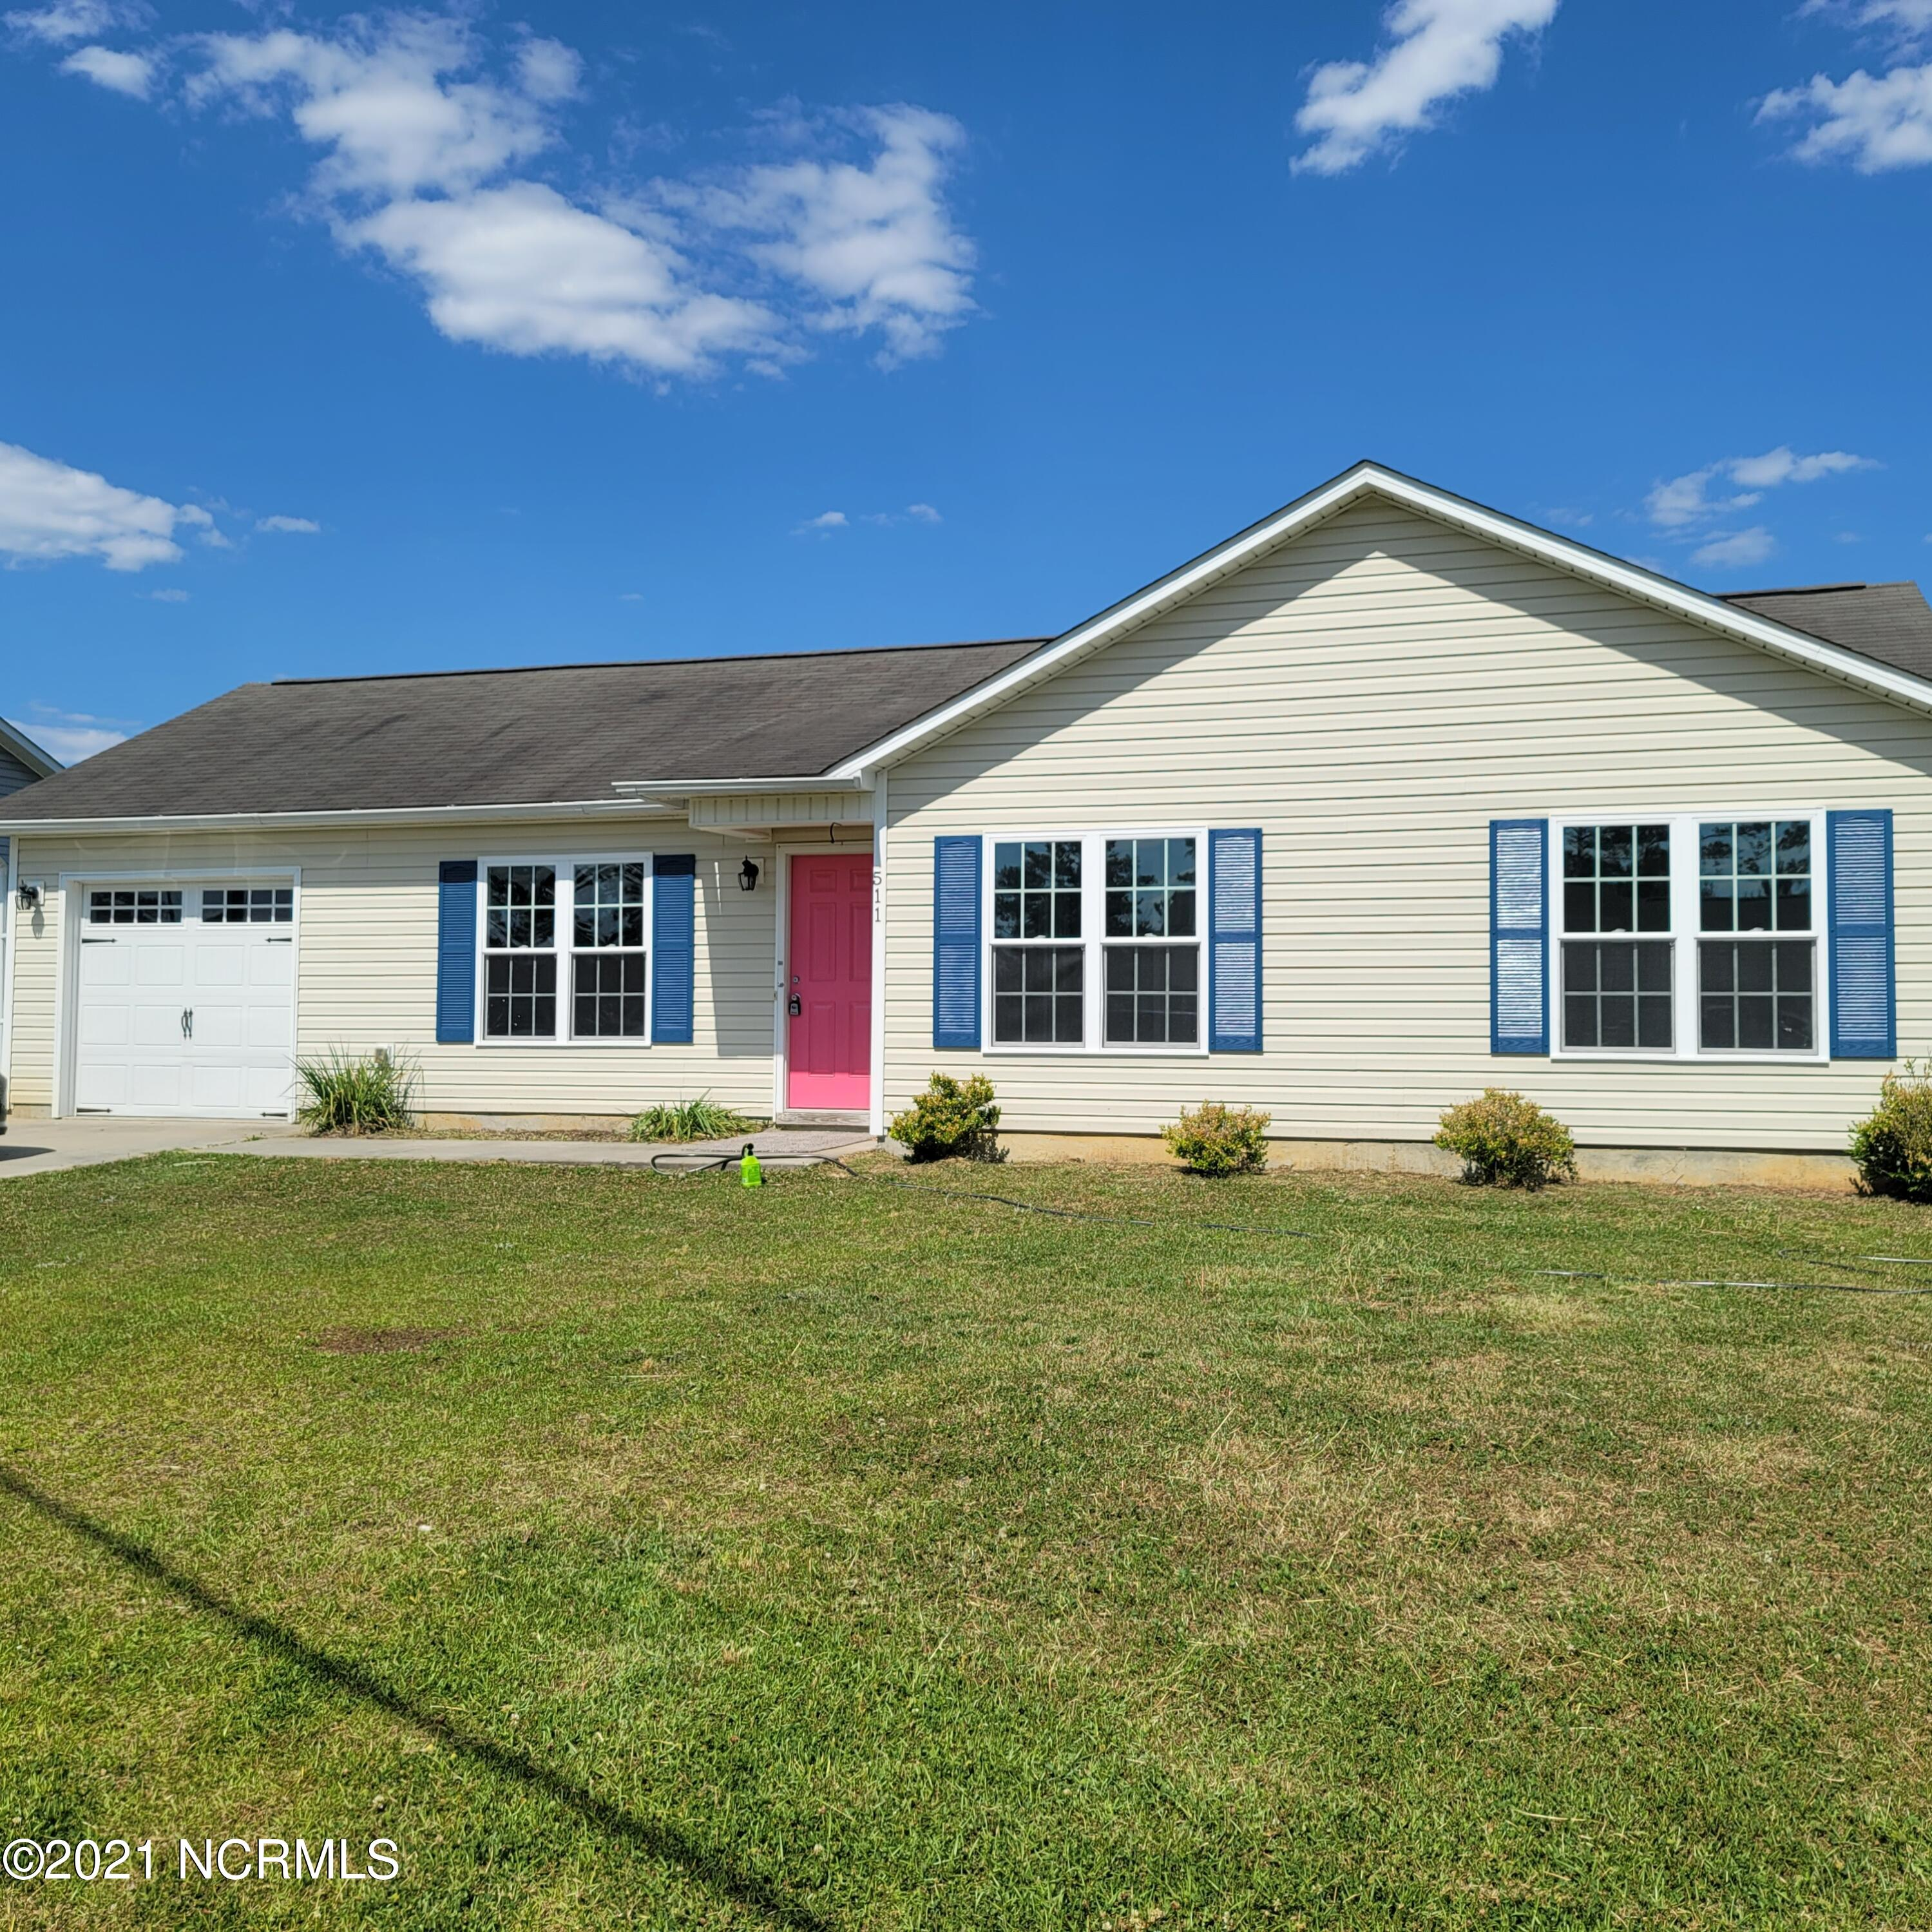 Here it is, the home you've been waiting for!  Featuring 3 bedrooms, 2 bathrooms, new flooring, fresh paint, new stove and microwave, and huge fenced in back yard!  All this home is missing is you!  Make your appointment, today.